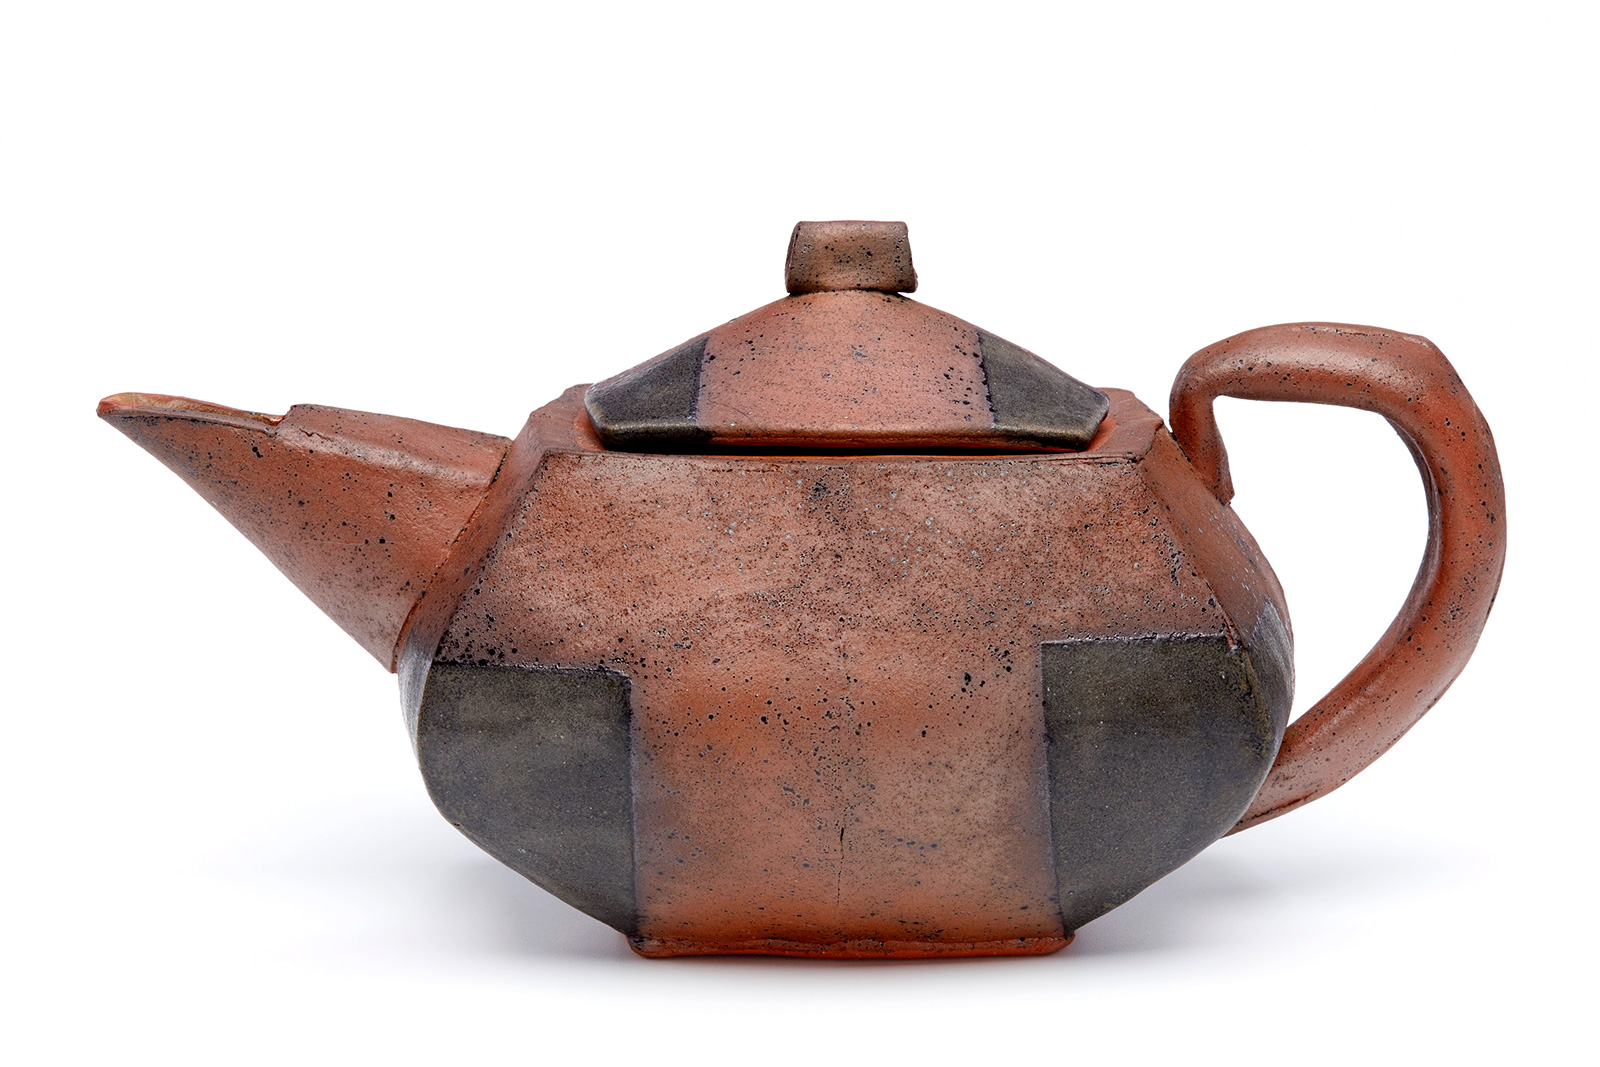 Mark Pharis. Teapot, 2015. Handbuilt earthenware, terra sigallata, woodash glaze with Mason stain 6600 (a chrome bearing black), Cone 04.